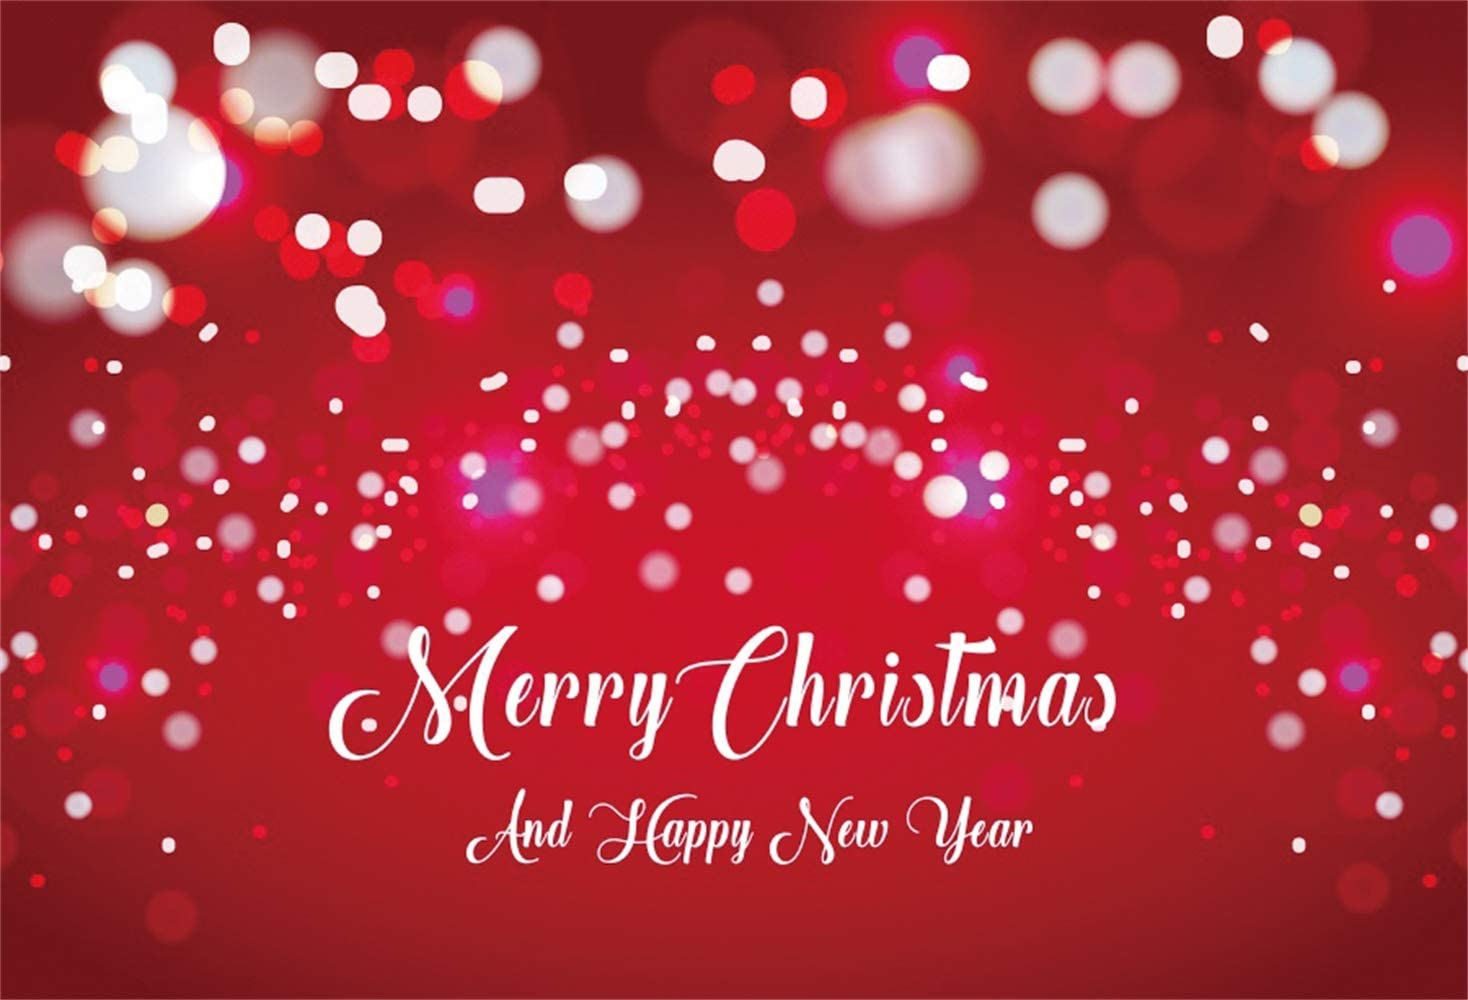 Leowefowa Merry Christmas and Happy New Year Backdrop 10x7ft Scattered Light Spots Bokeh Haloes Red Vinyl Photo Background New Year Xmas Eve Party Banner Greeting Card Wallpaper Child Adult Shoot